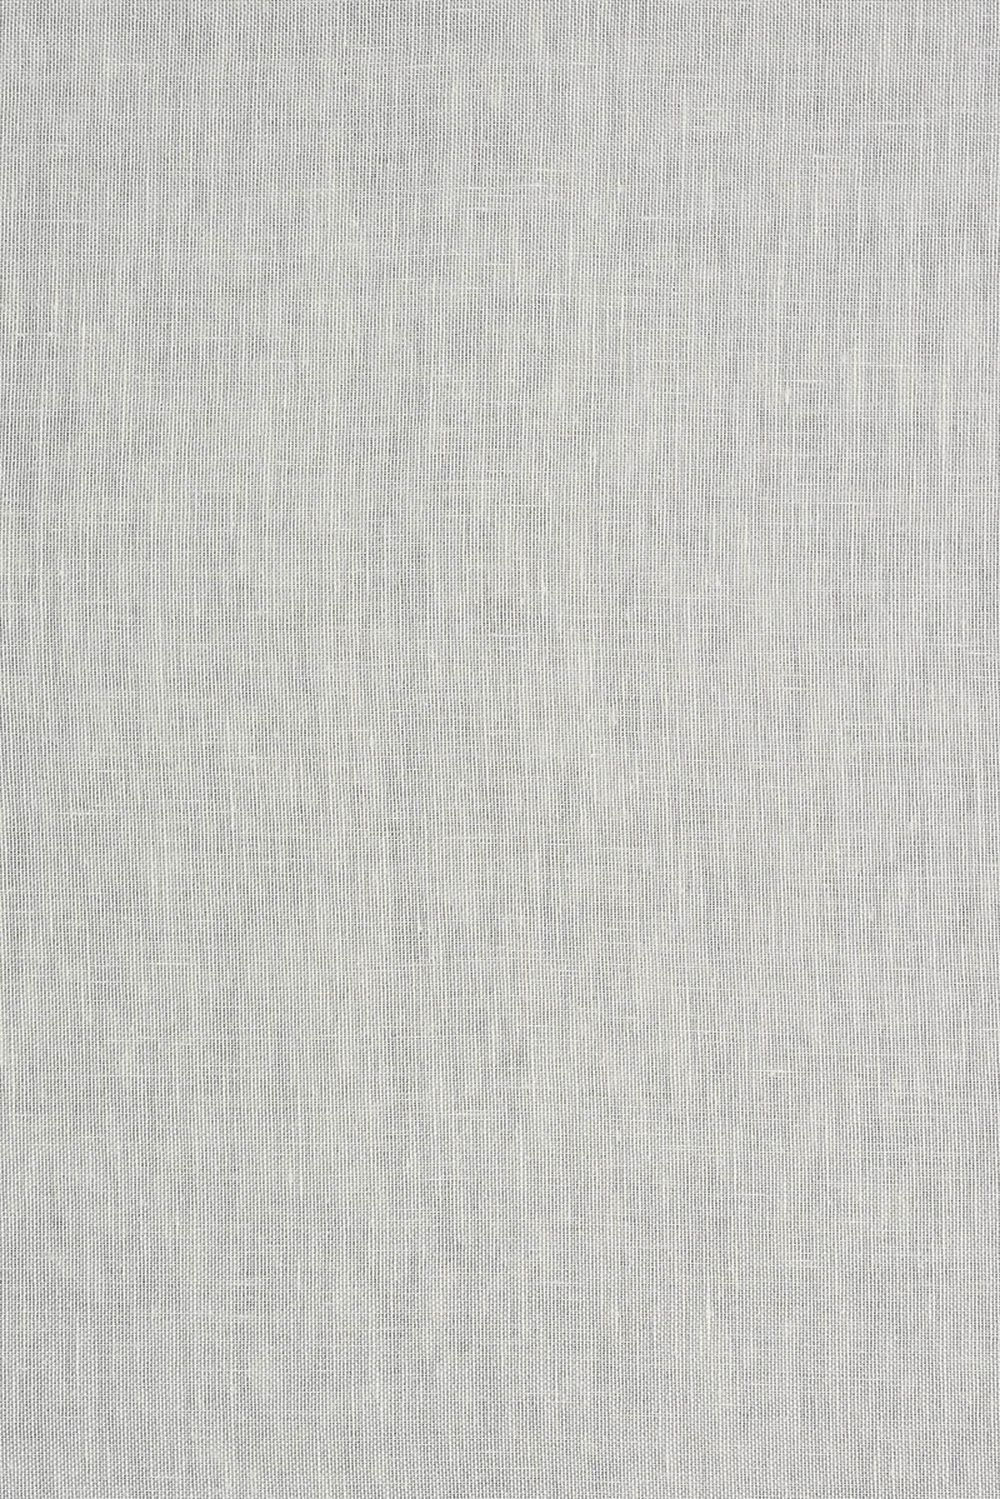 Photo of the fabric Linen* Calm swatch by James Dunlop. Use for Curtains, Accessory. Style of Plain